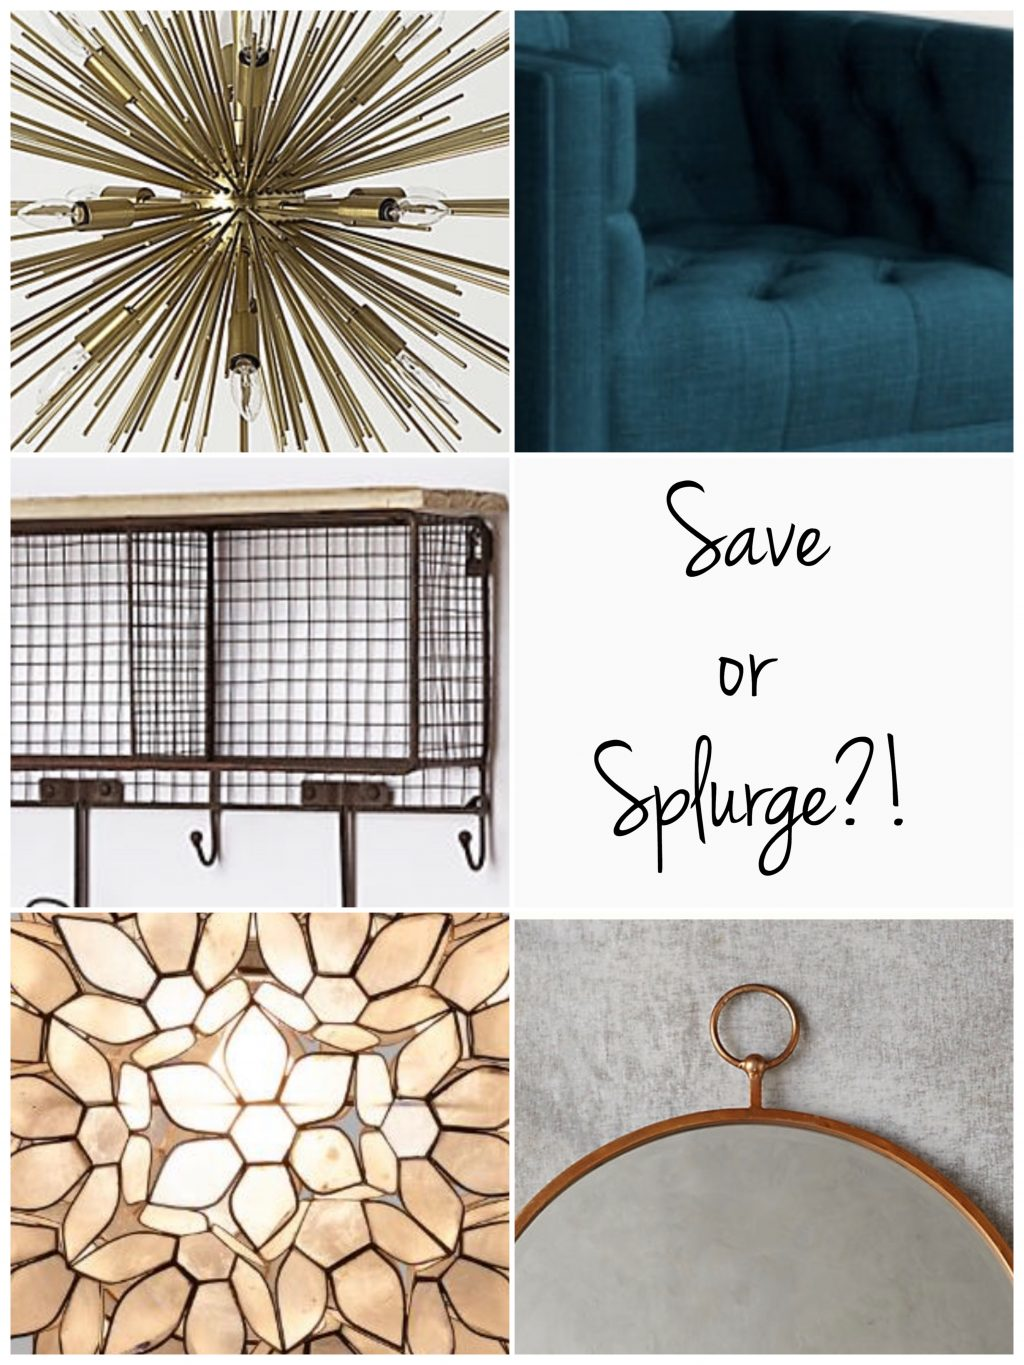 Anthropologie vs. World Market; Splurge or Save On These Popular Home Decor items?